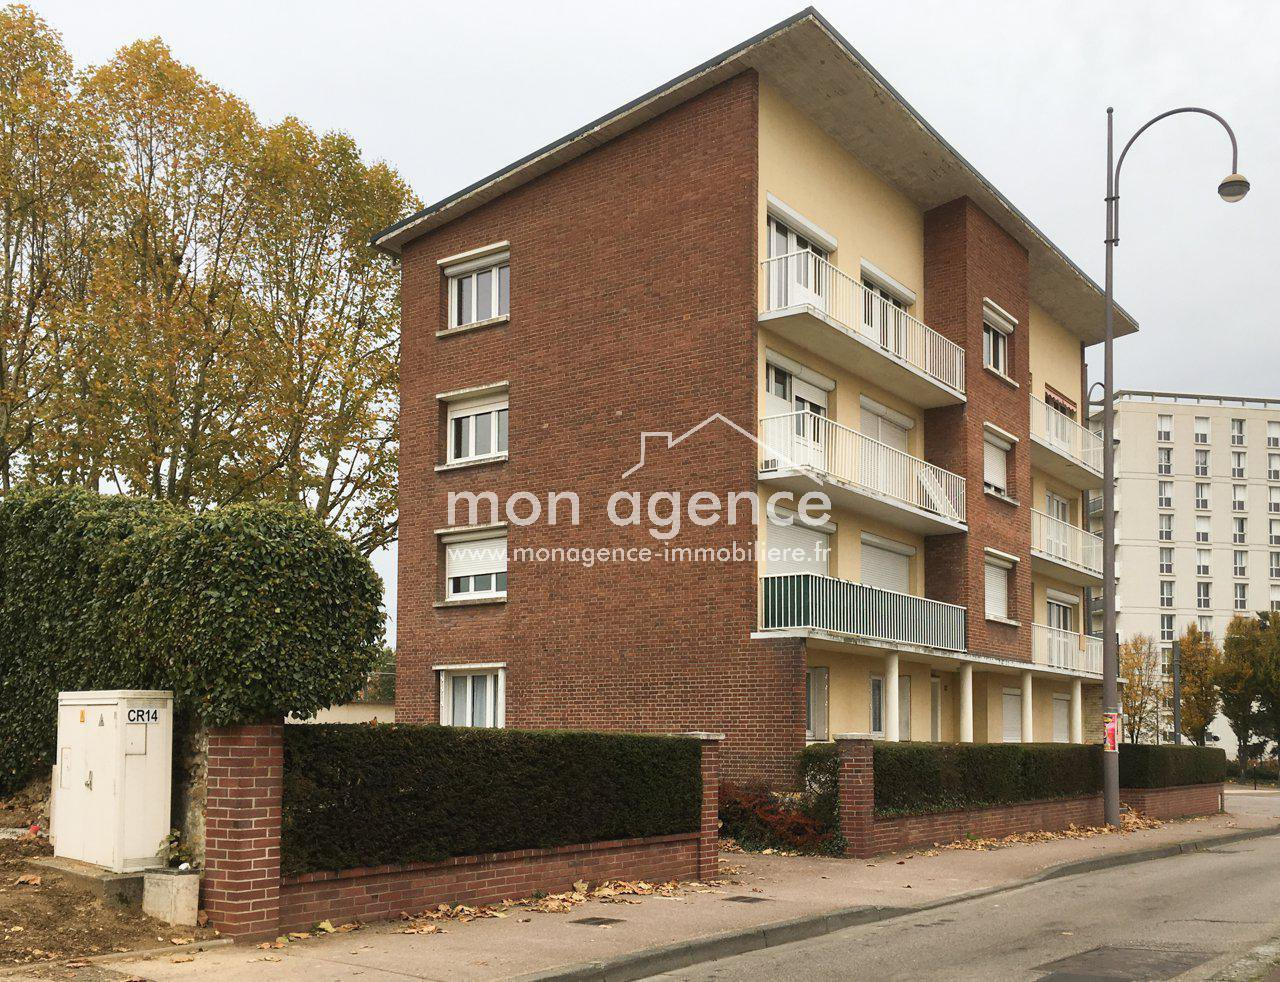 Le Petit Quevilly 76140, Appartement T3